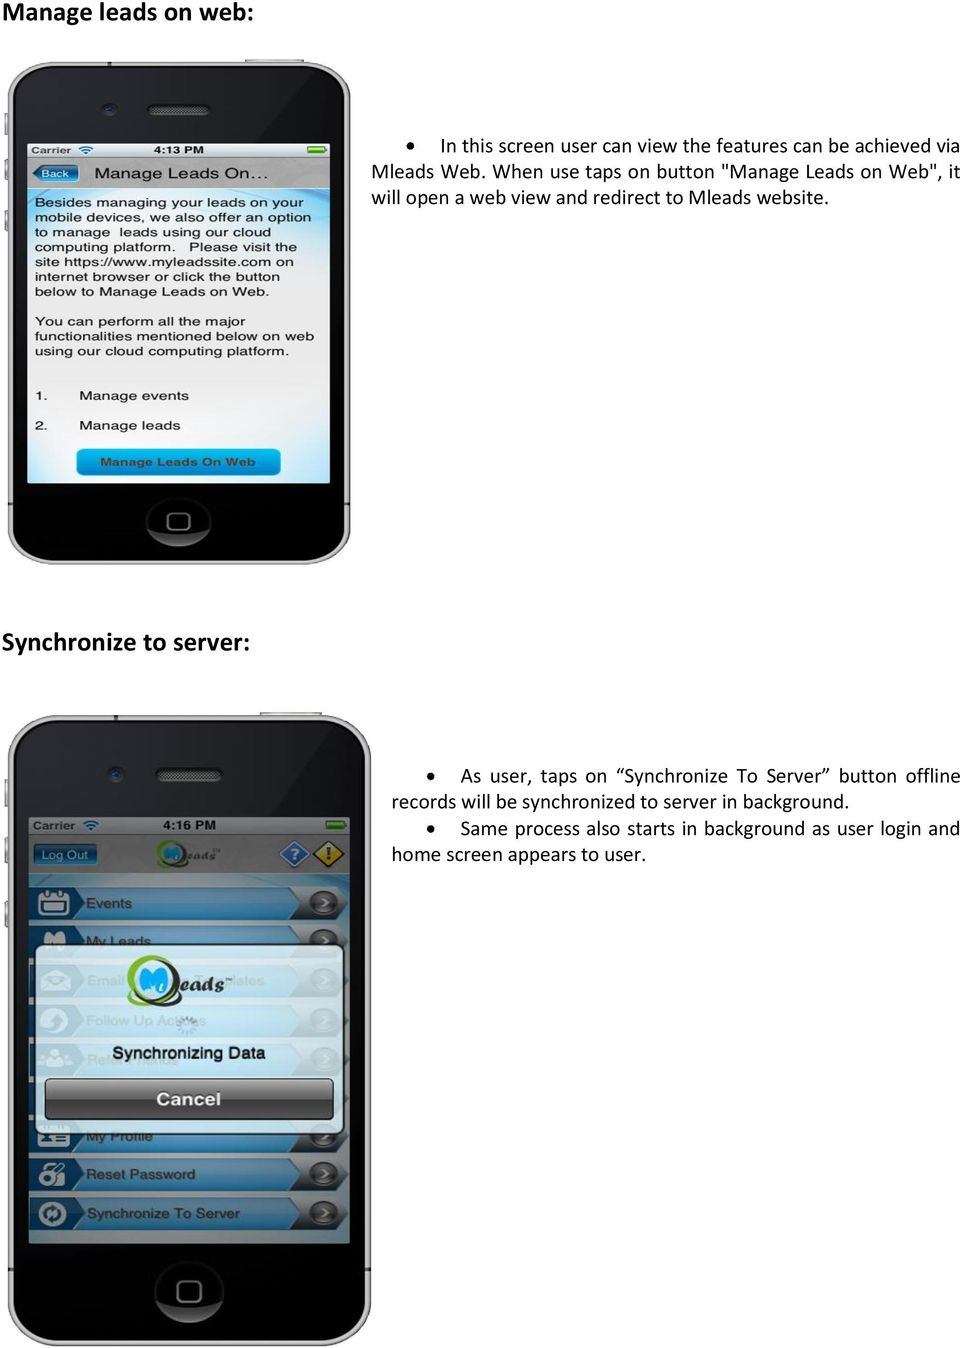 Synchronize to server: As user, taps on Synchronize To Server button offline records will be